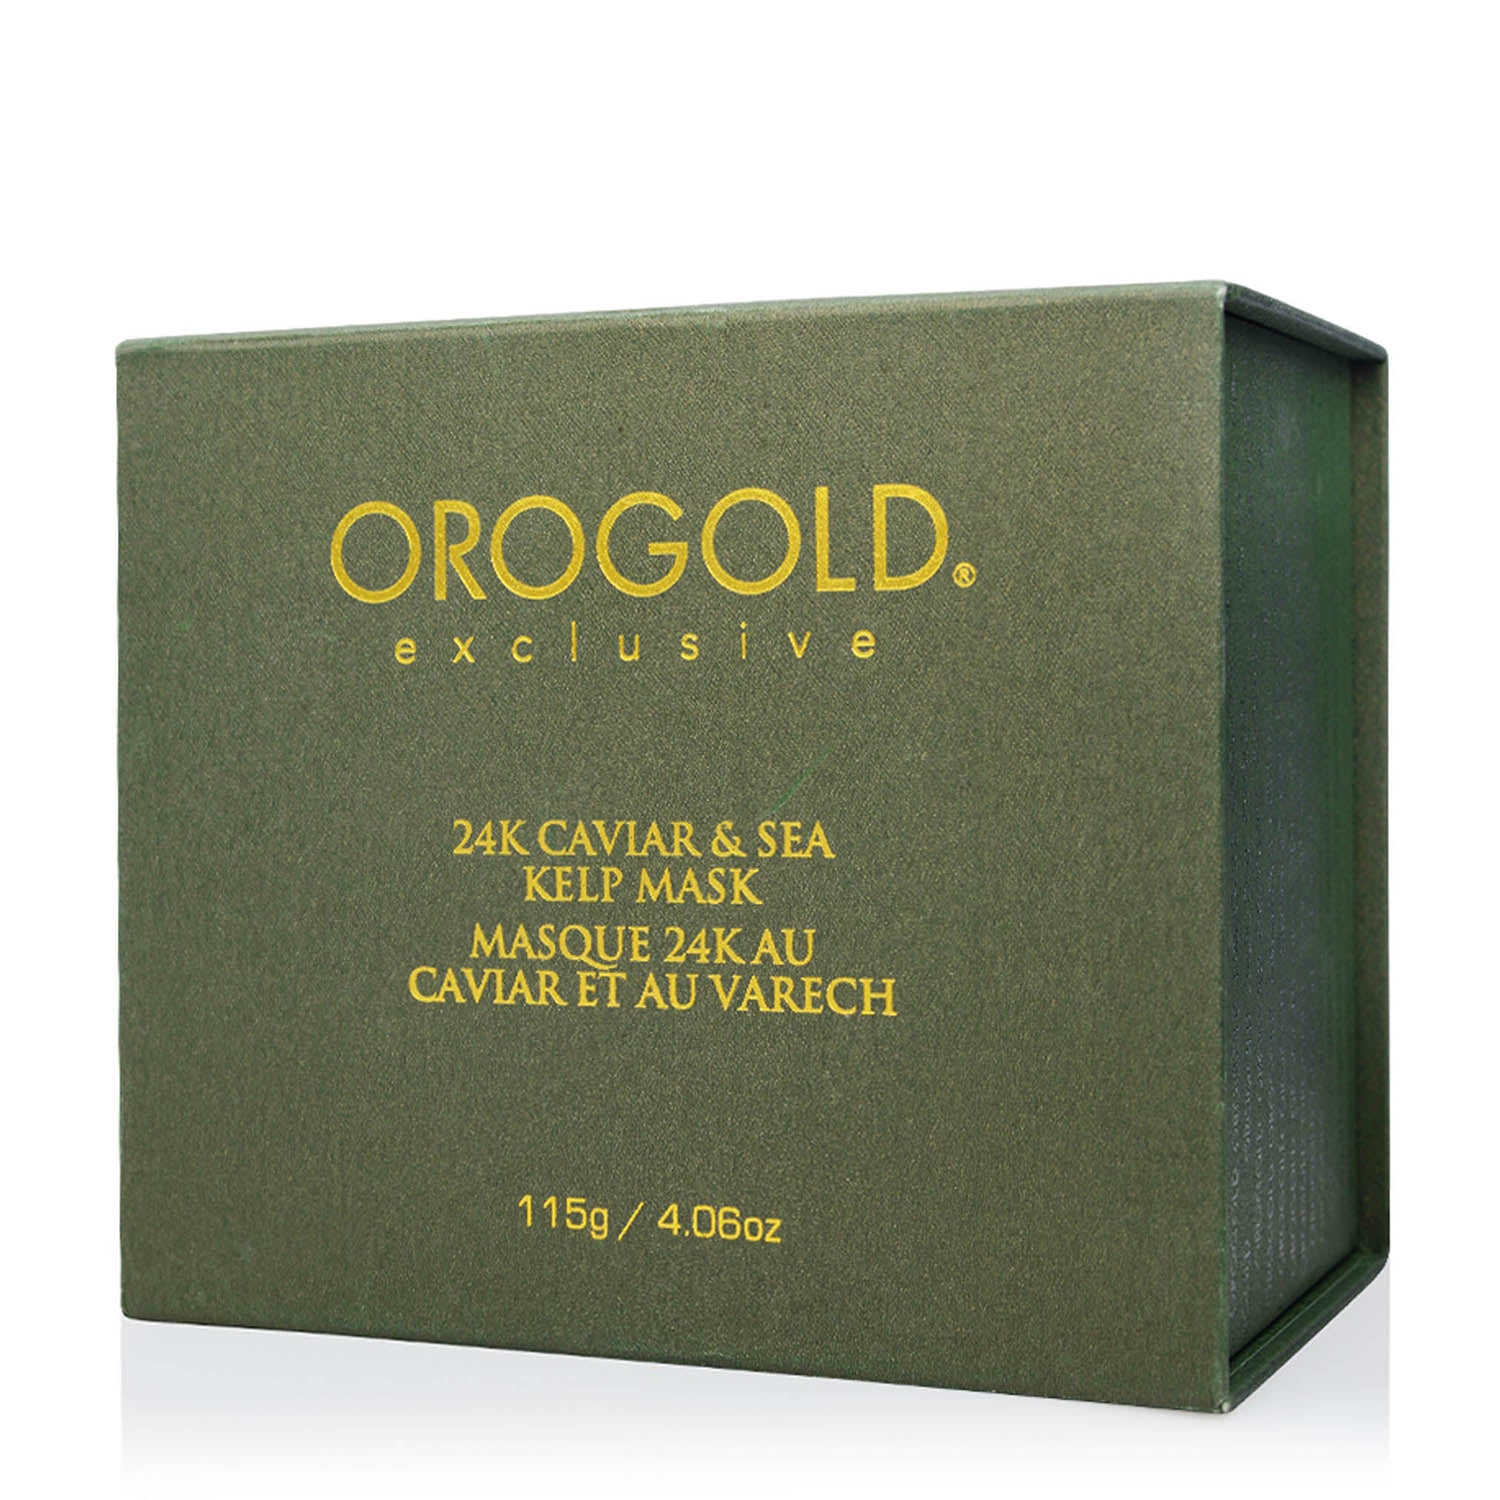 orogold caviar anti wrinkle mask